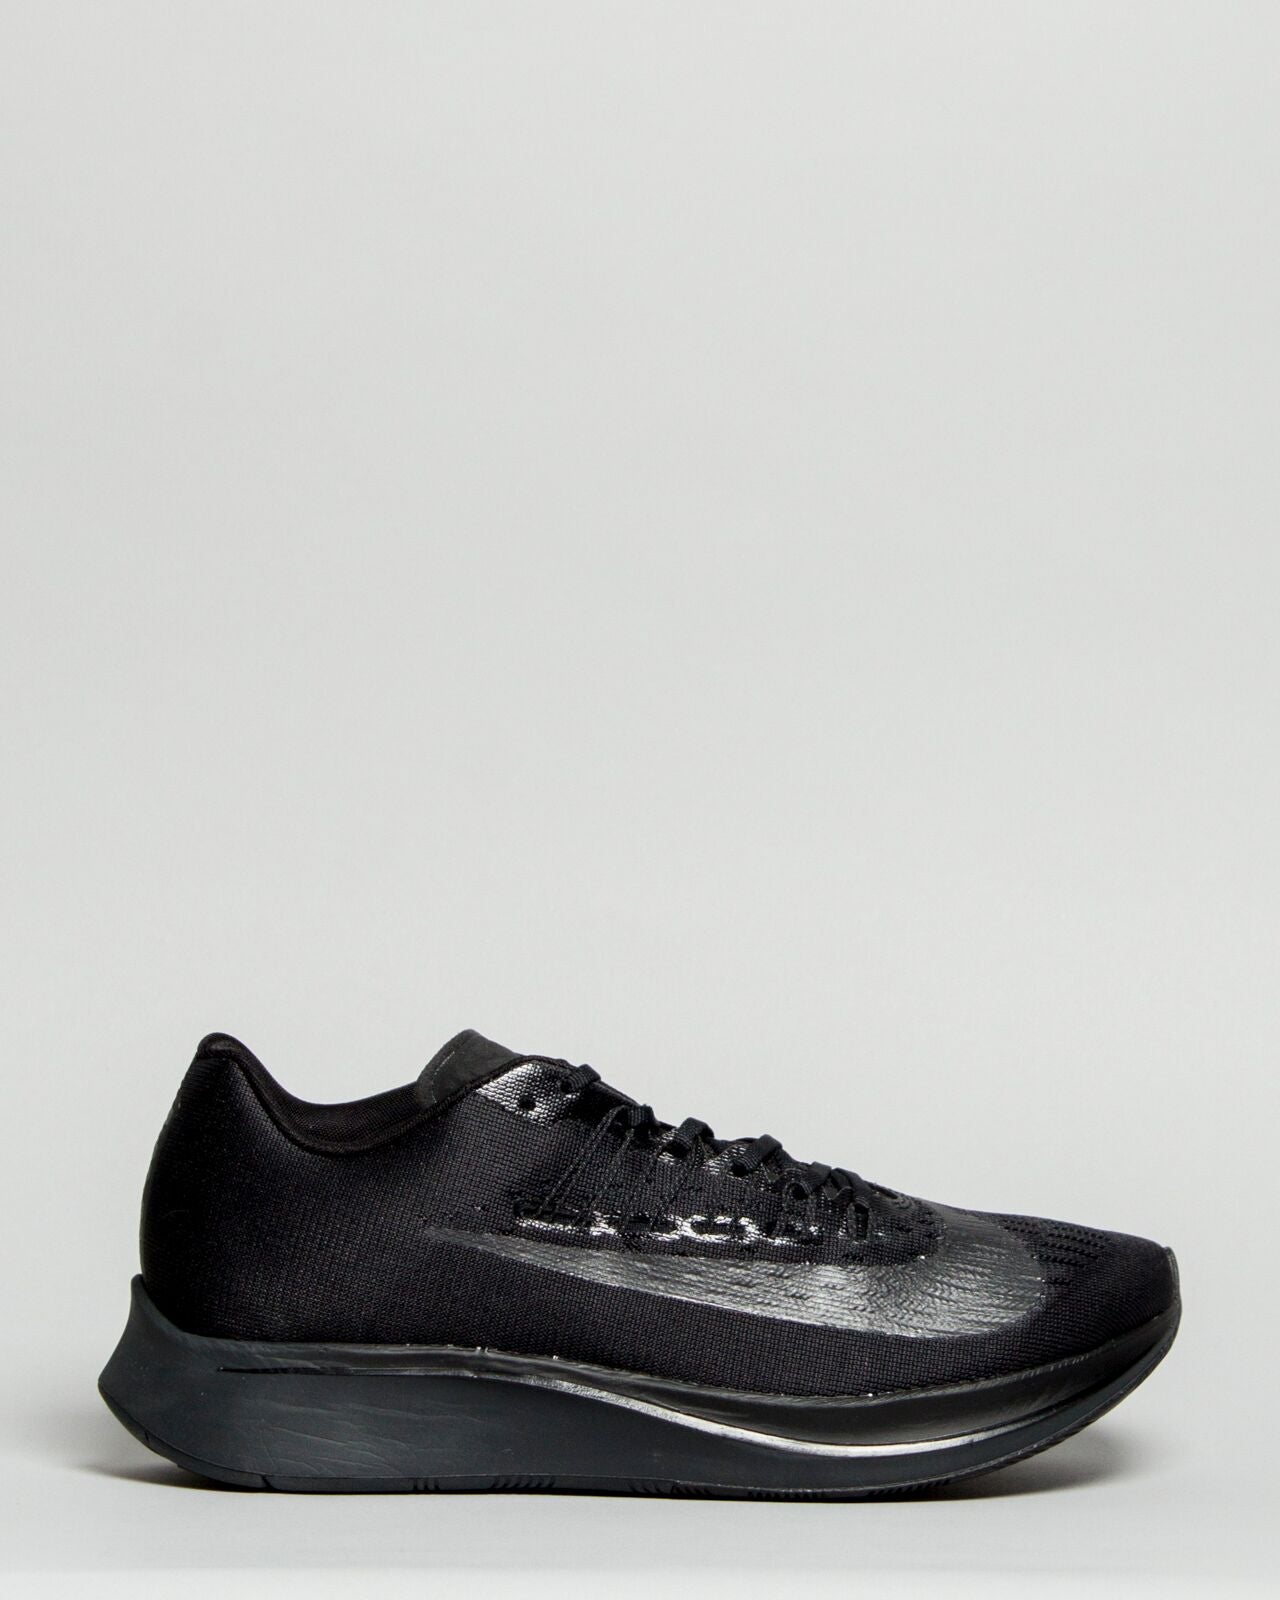 0ac9f9fdeb75 Zoom Fly Black Black Anthracite – LIKELIHOOD